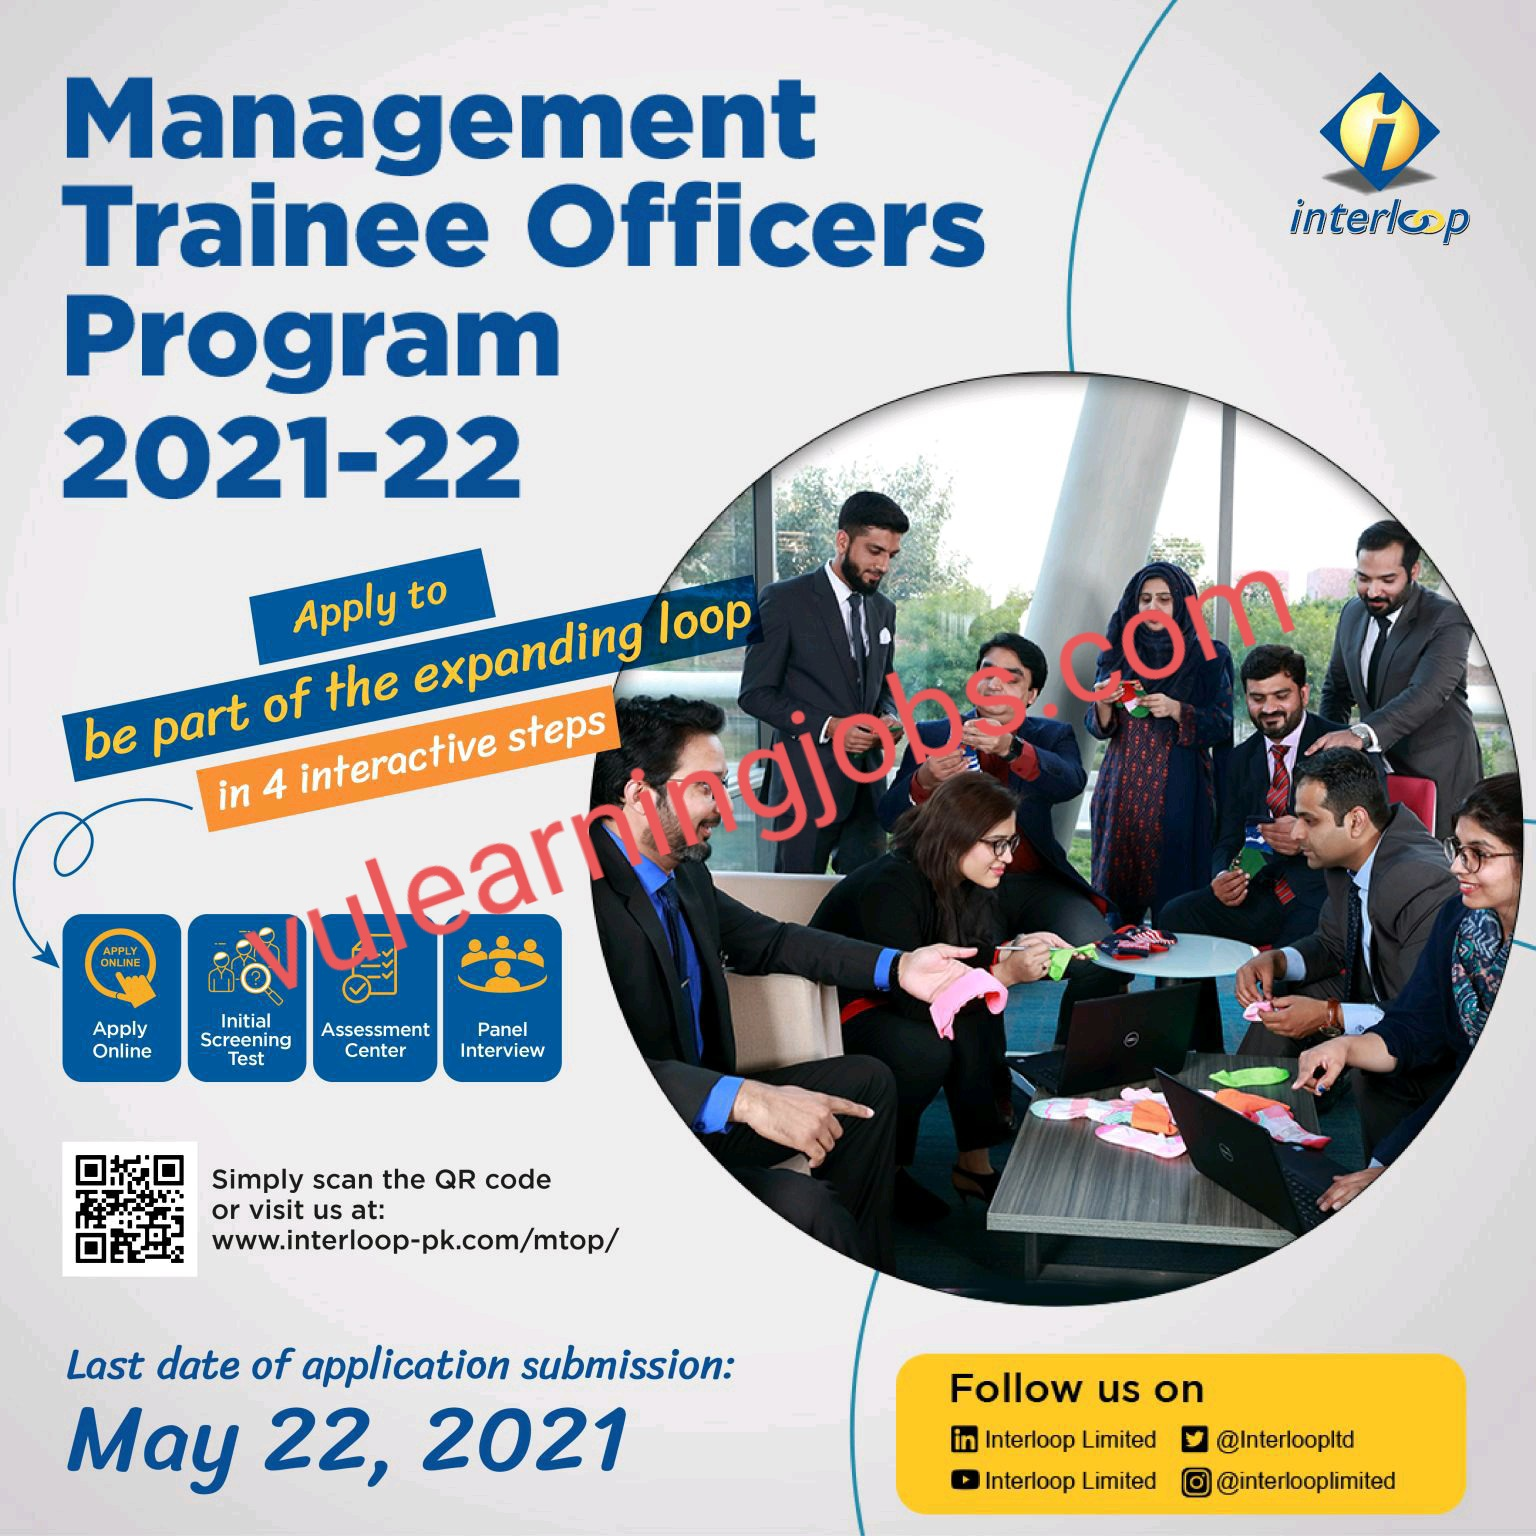 Interloop Limited Trainee Officers Jobs In Pakistan May 2021 Latest   Apply Now